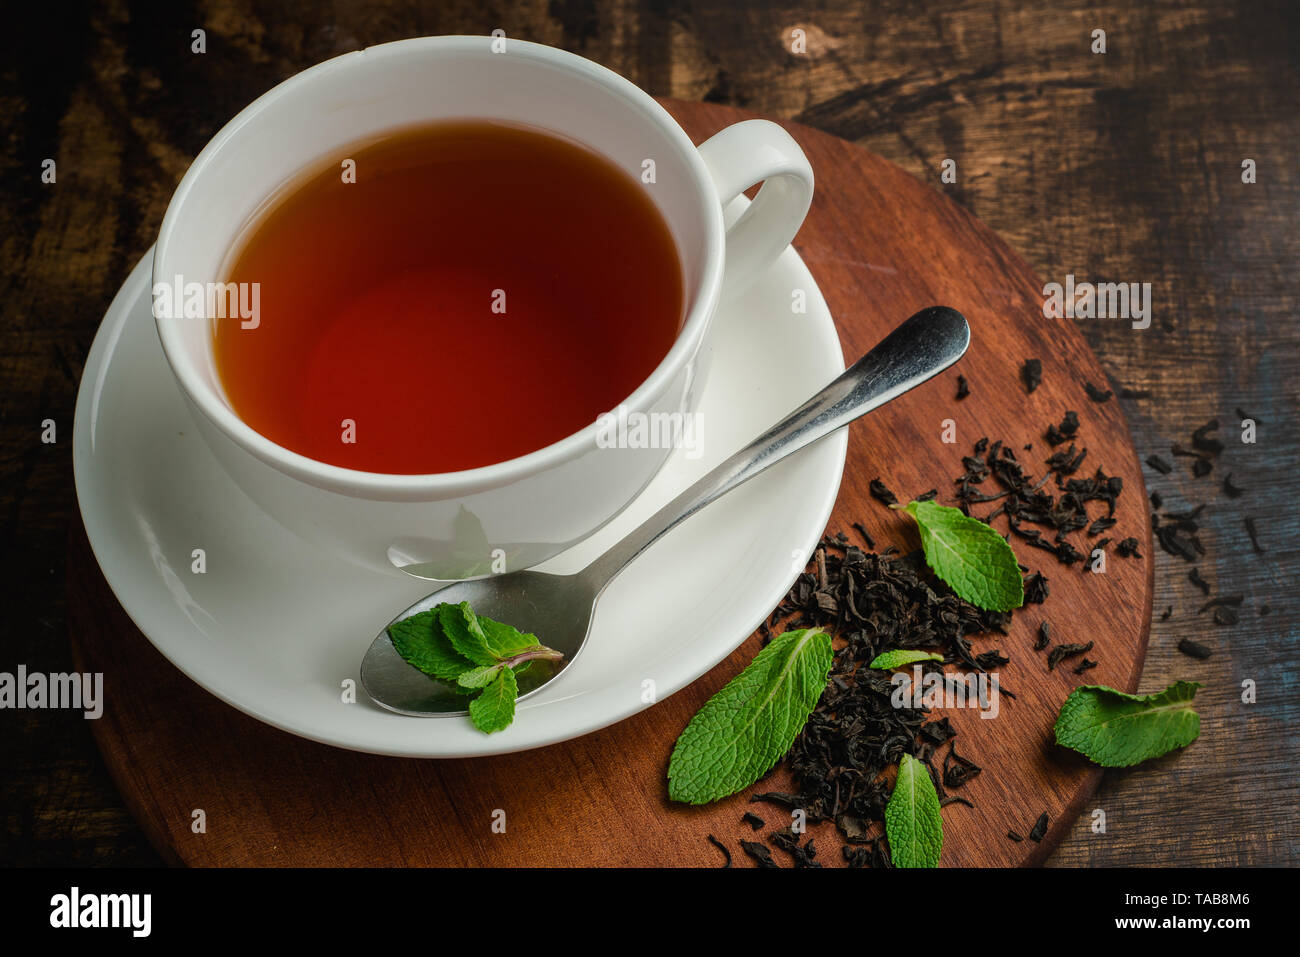 Mint tea in white porcelain cup on a warm wooden background with tea brew and mint leaves. Drink photo with copy space Stock Photo